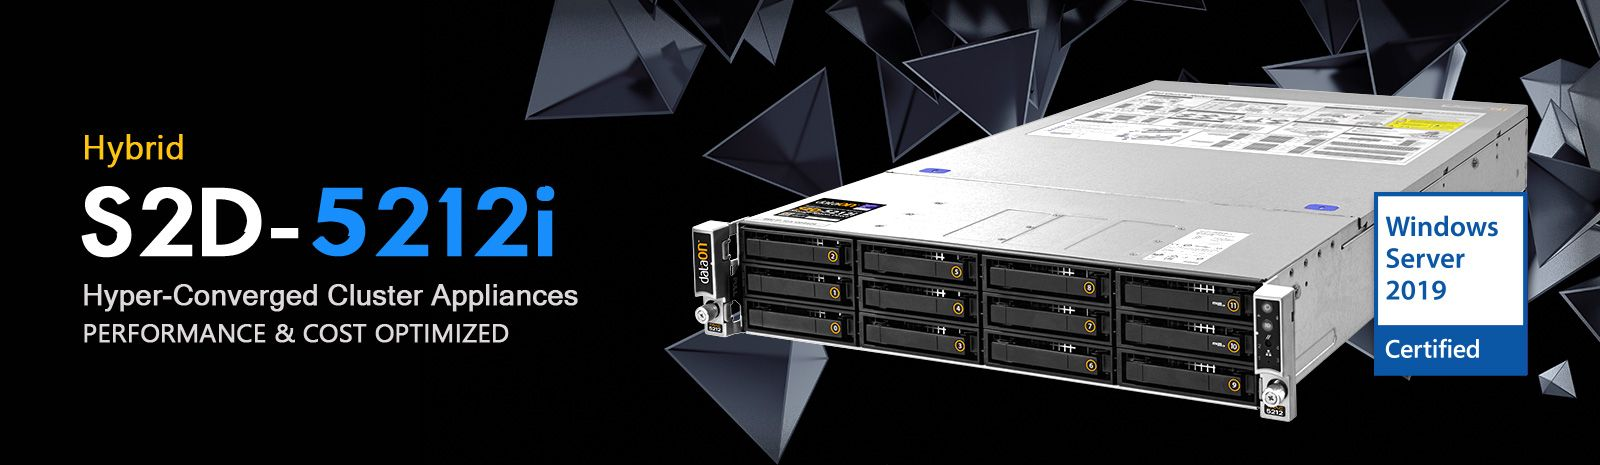 DataON TracSystem S2D-5212i Hyper-Converged Cluster Appliances